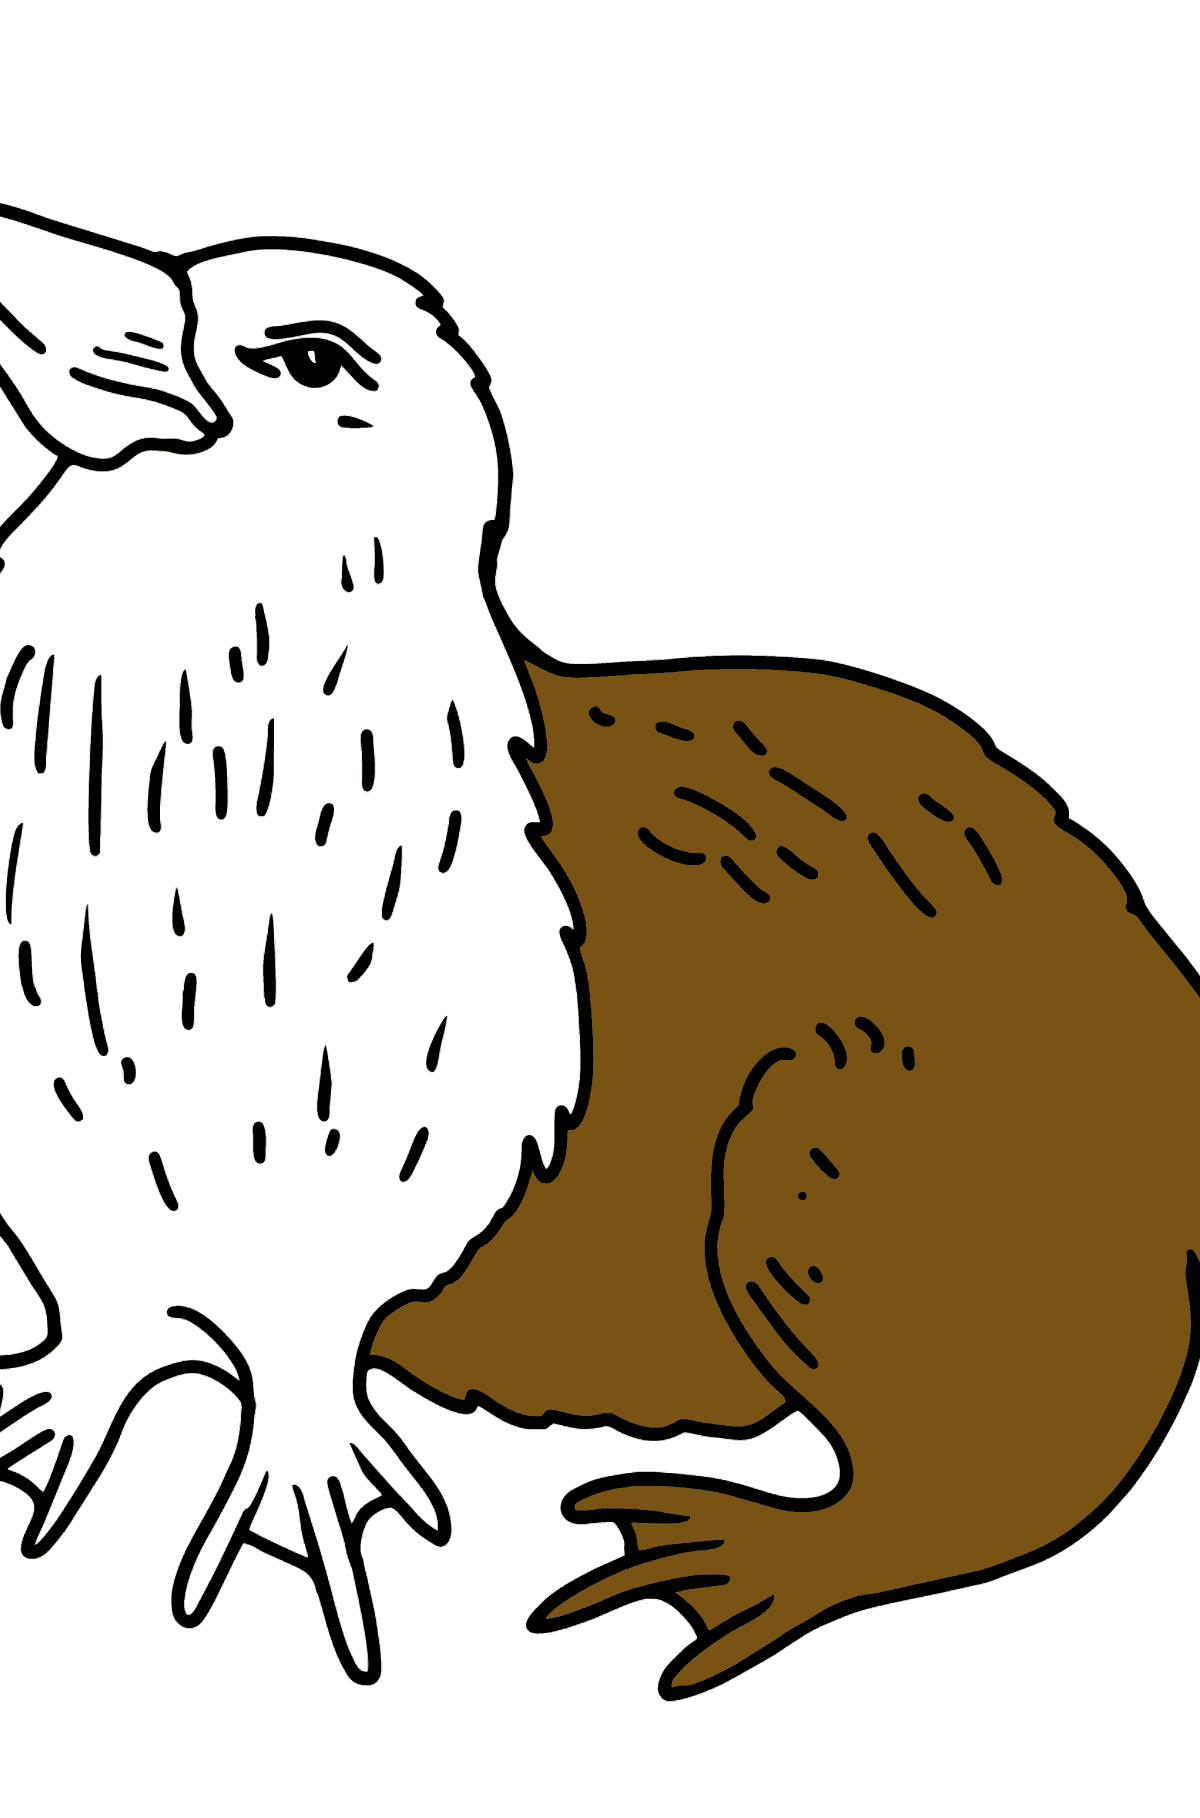 Platypus coloring page - Coloring Pages for Kids